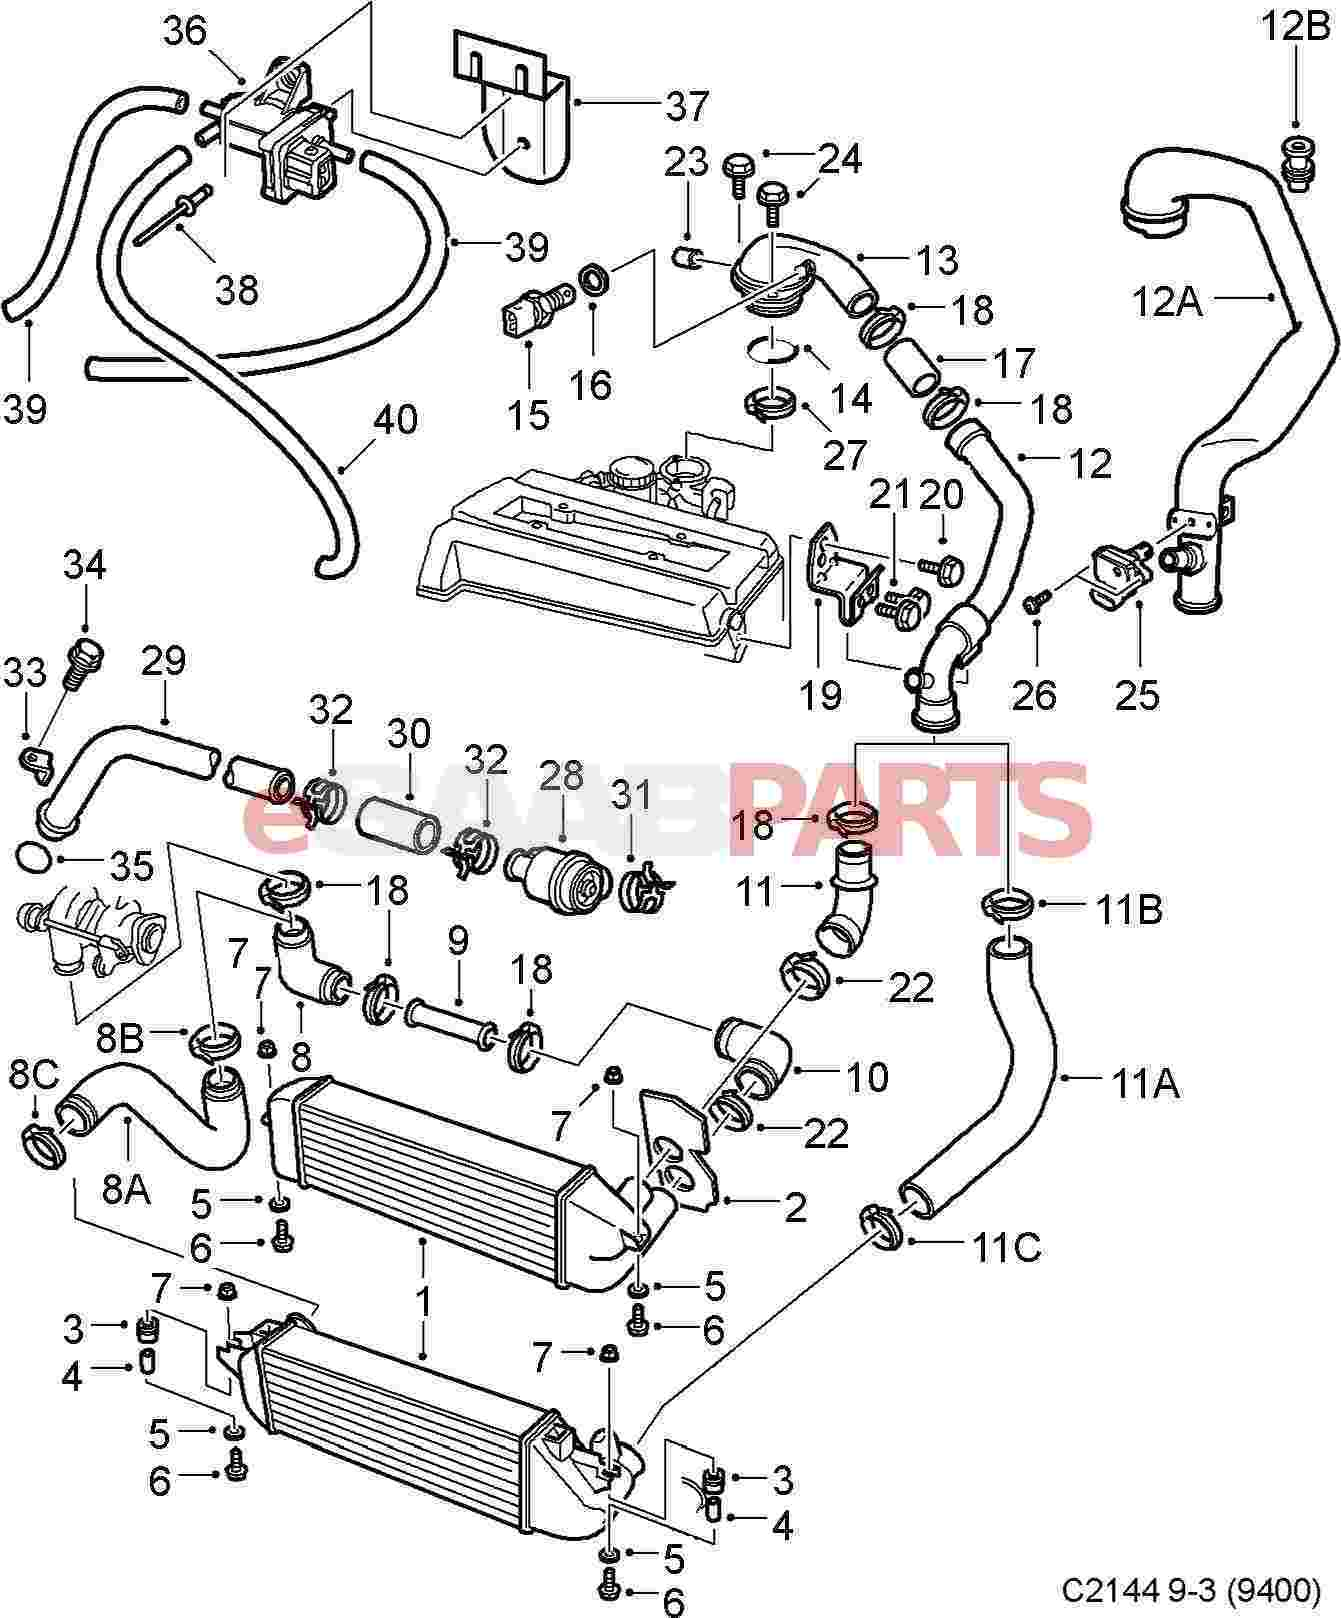 2003 Saab 93 Engine Diagram on nissan an pcv valve location